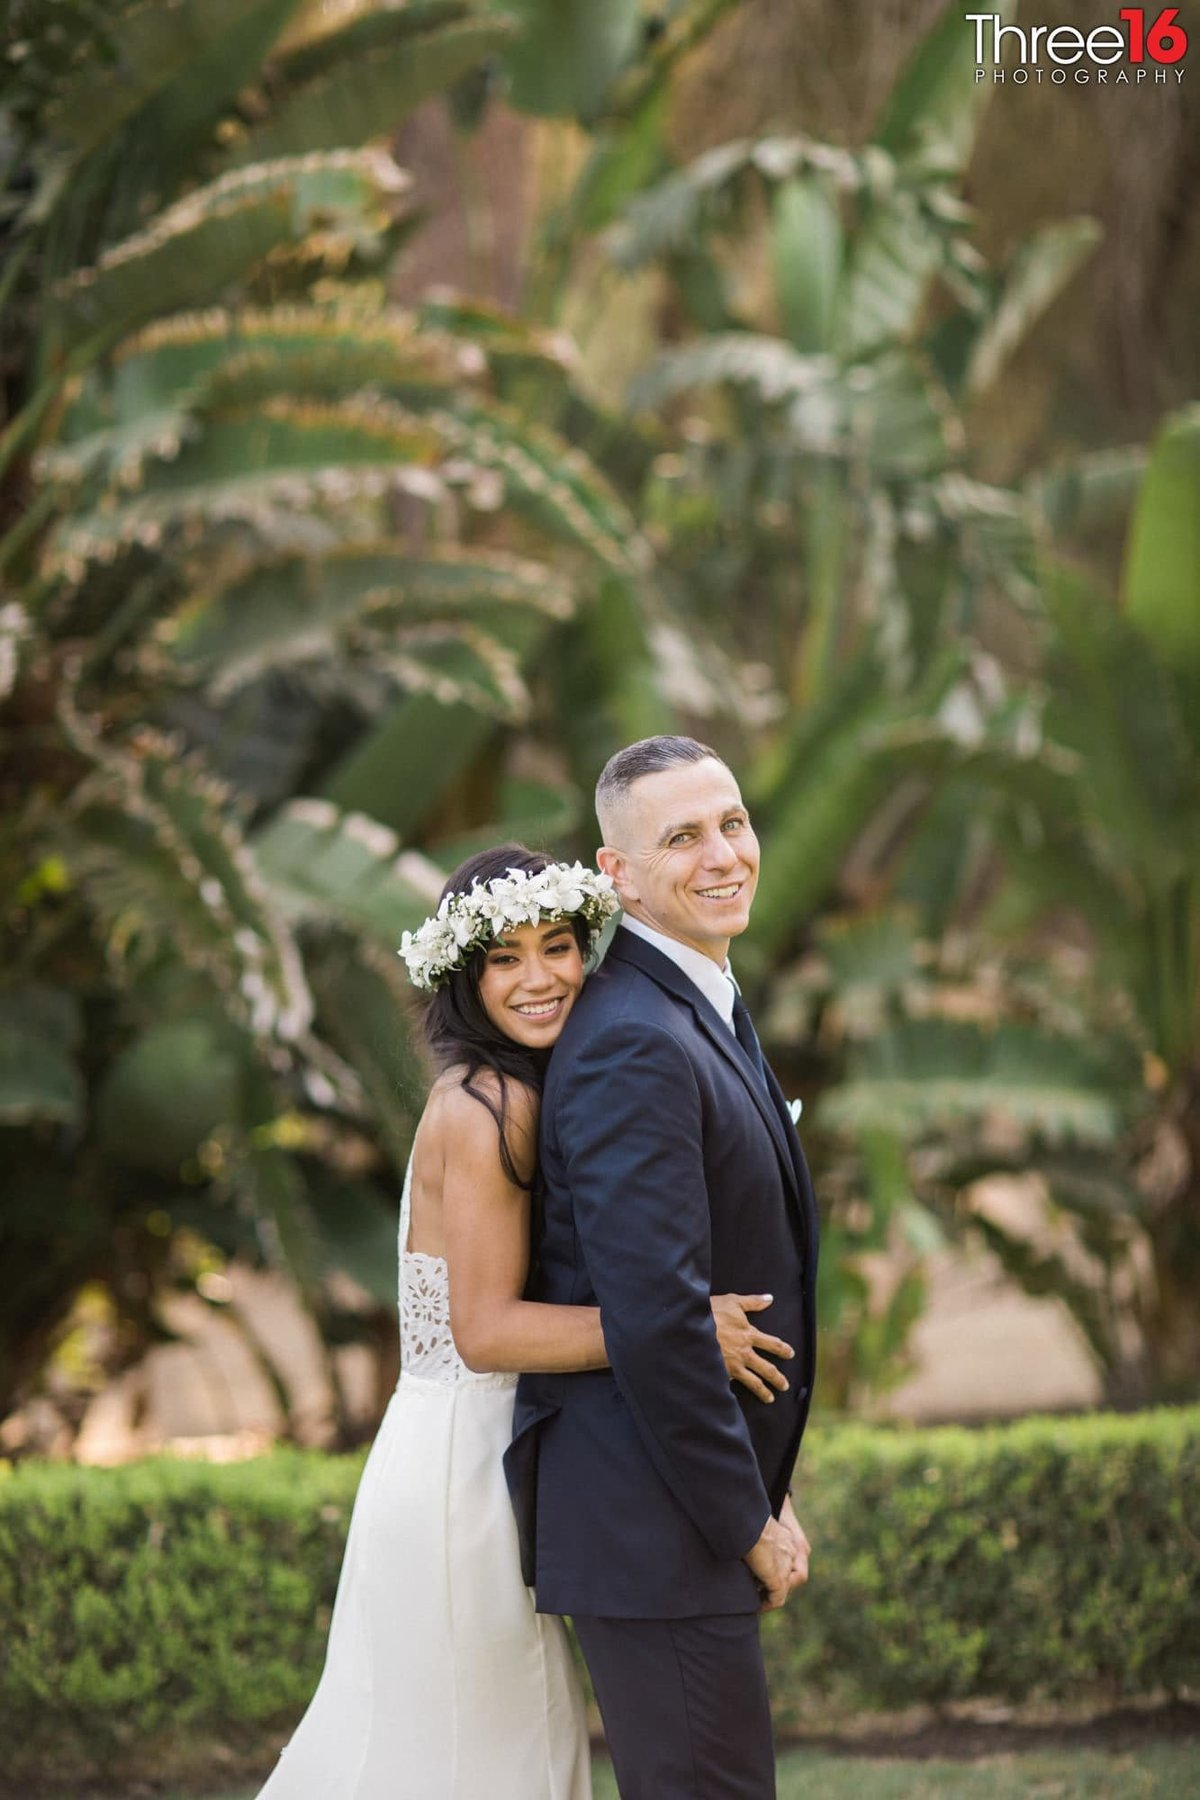 Newhall Mansion Piru California Los Angeles  Wedding Venue Photographs Bride and Groom Portraits